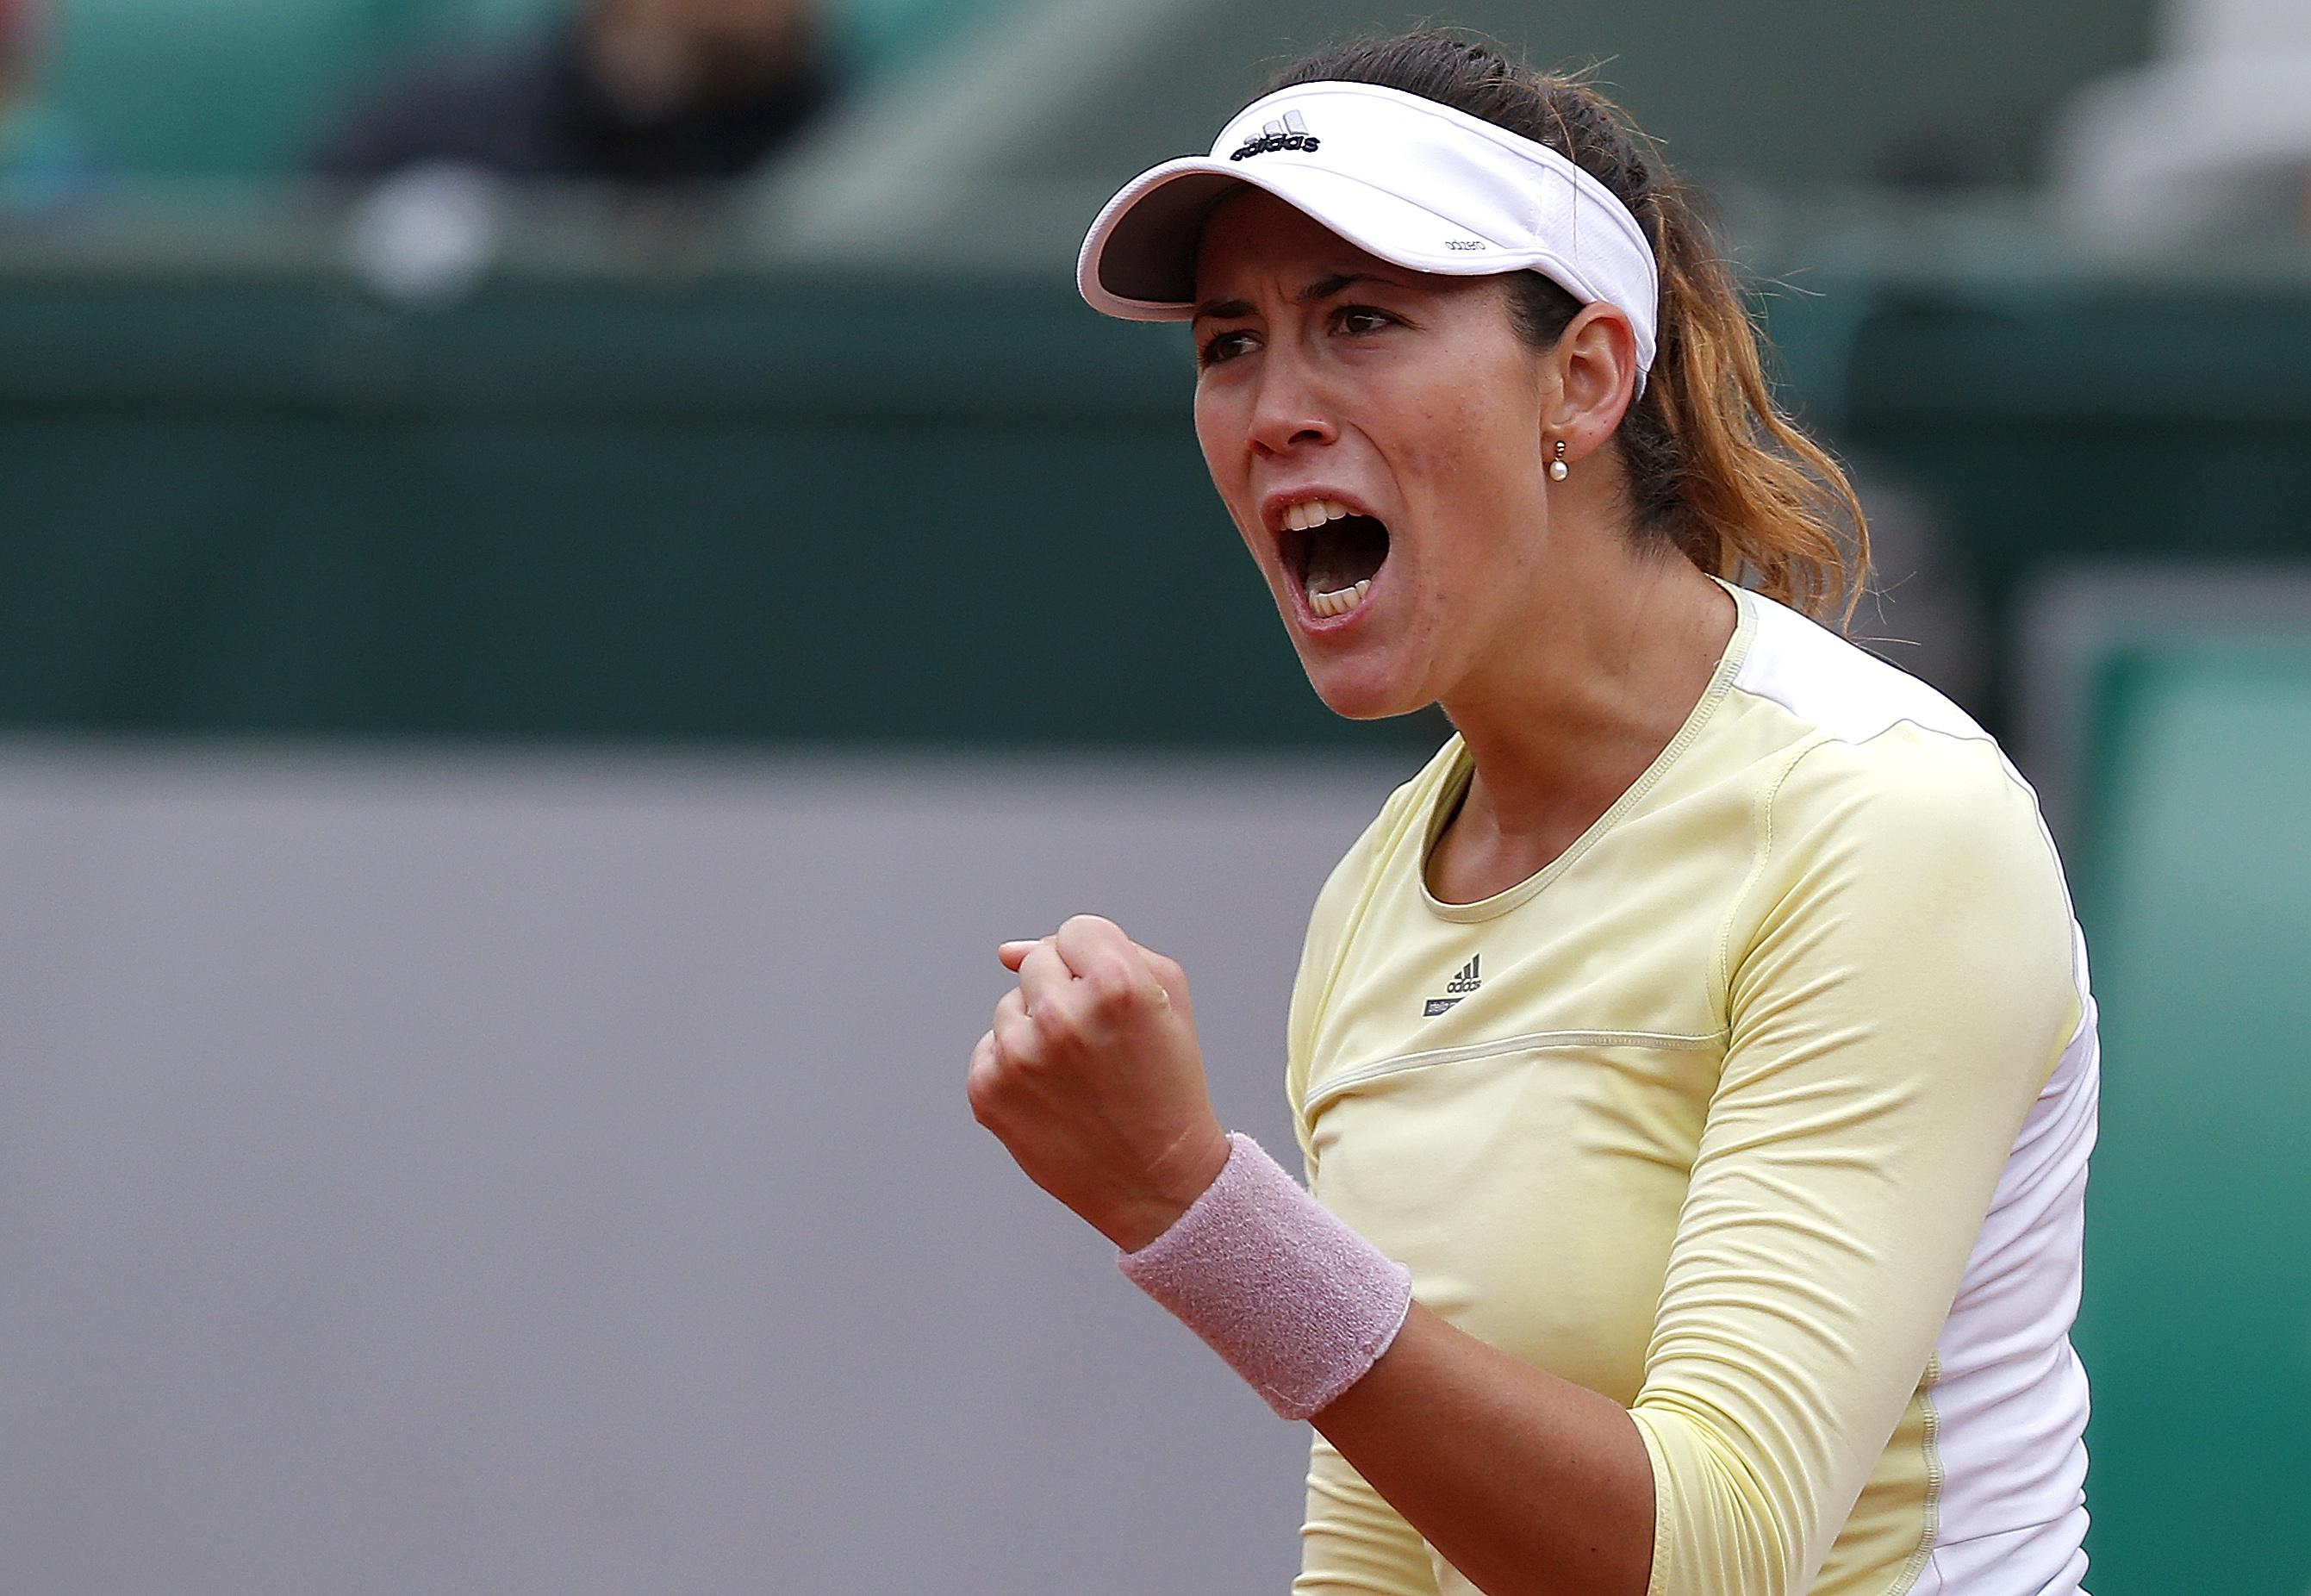 Garbine Muguruza Reaction Mobile Hd Wallpaper Free Download Background